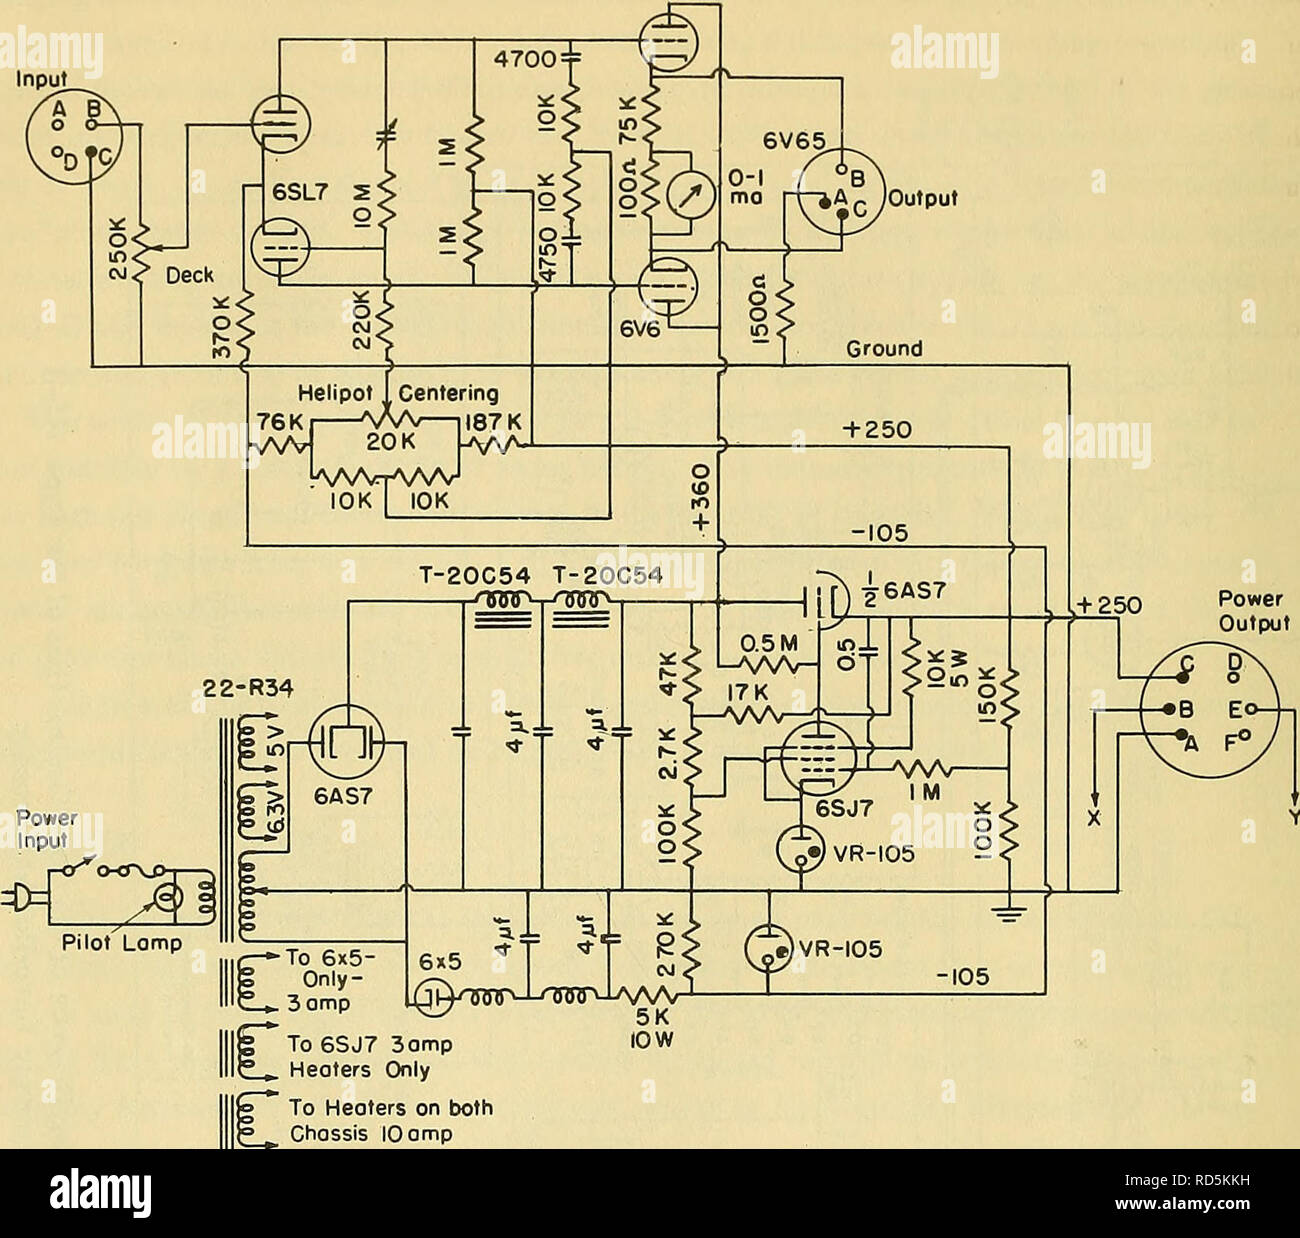 hight resolution of co 29 mic wiring co circuit diagrams wiring diagram user co 29 mic wiring co circuit diagrams